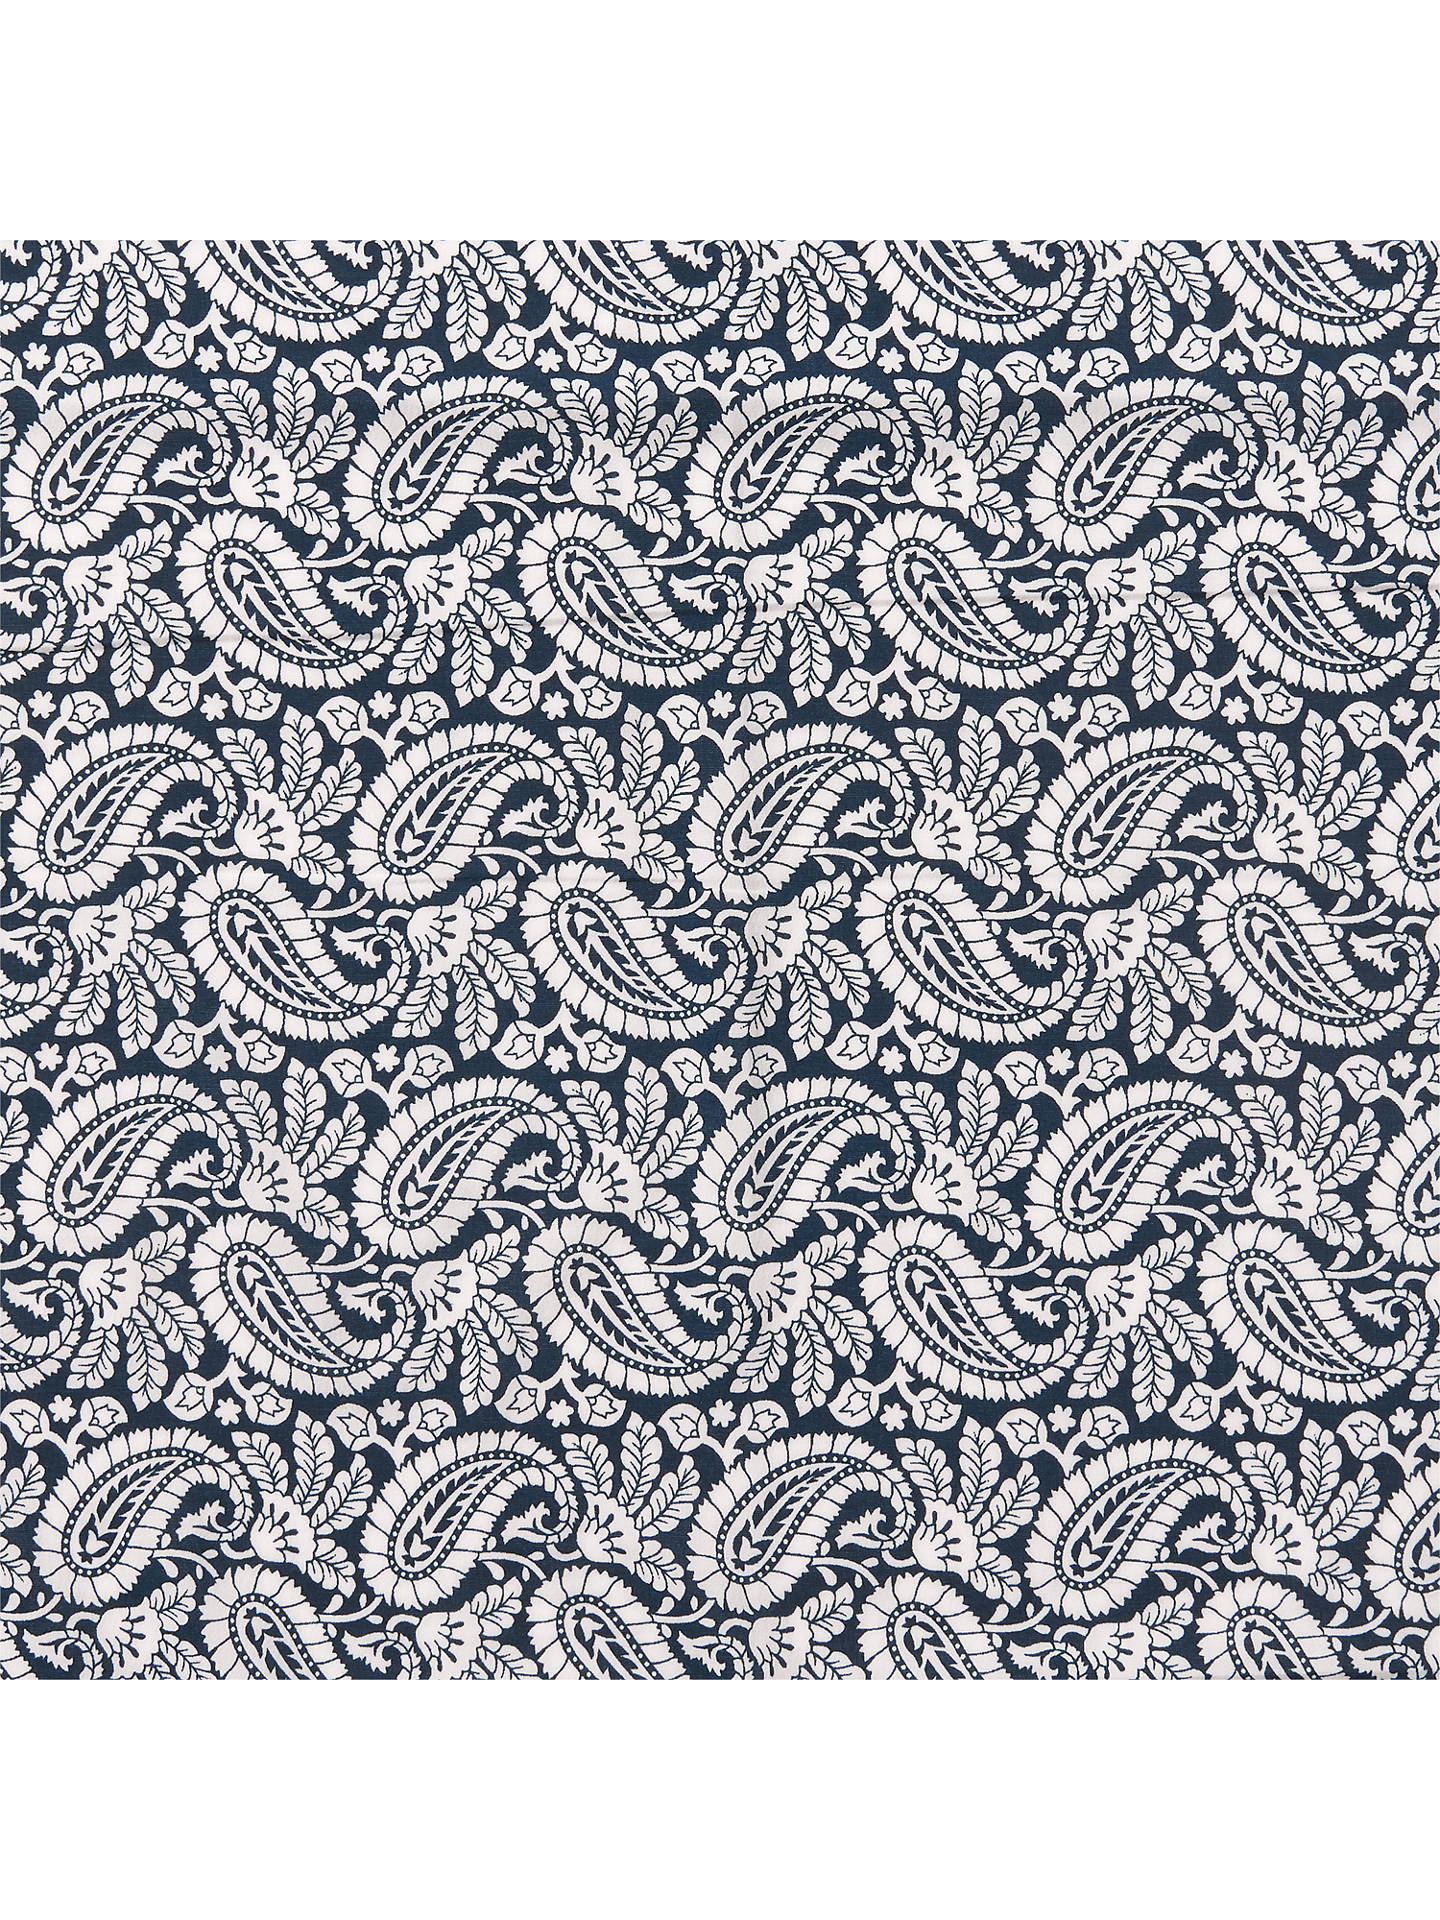 Ods Textiles Paisley Pattern Print Fabric Navy Online At Johnlewis